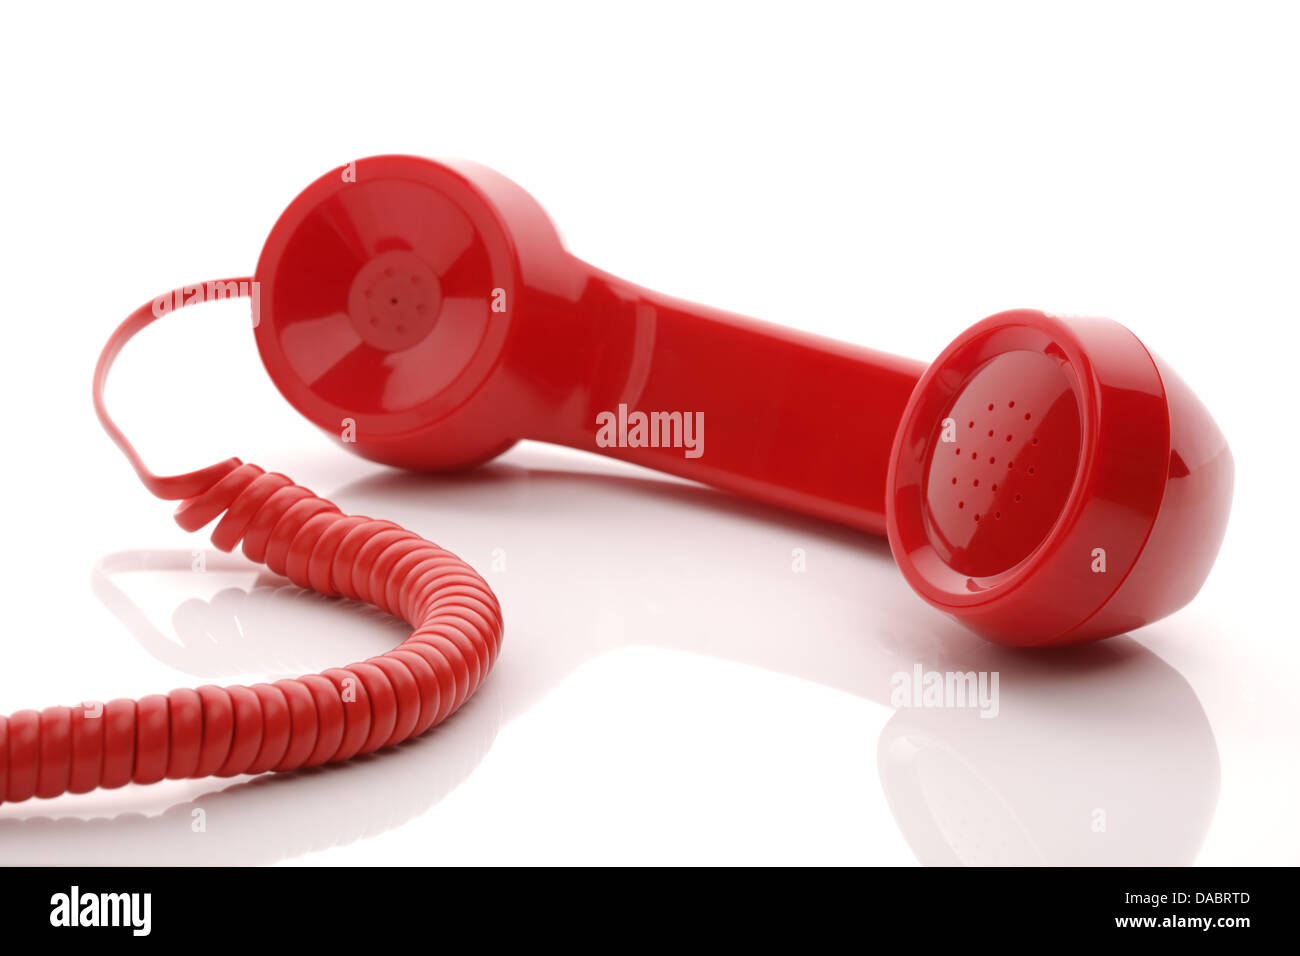 Red telephone receiver - Stock Image